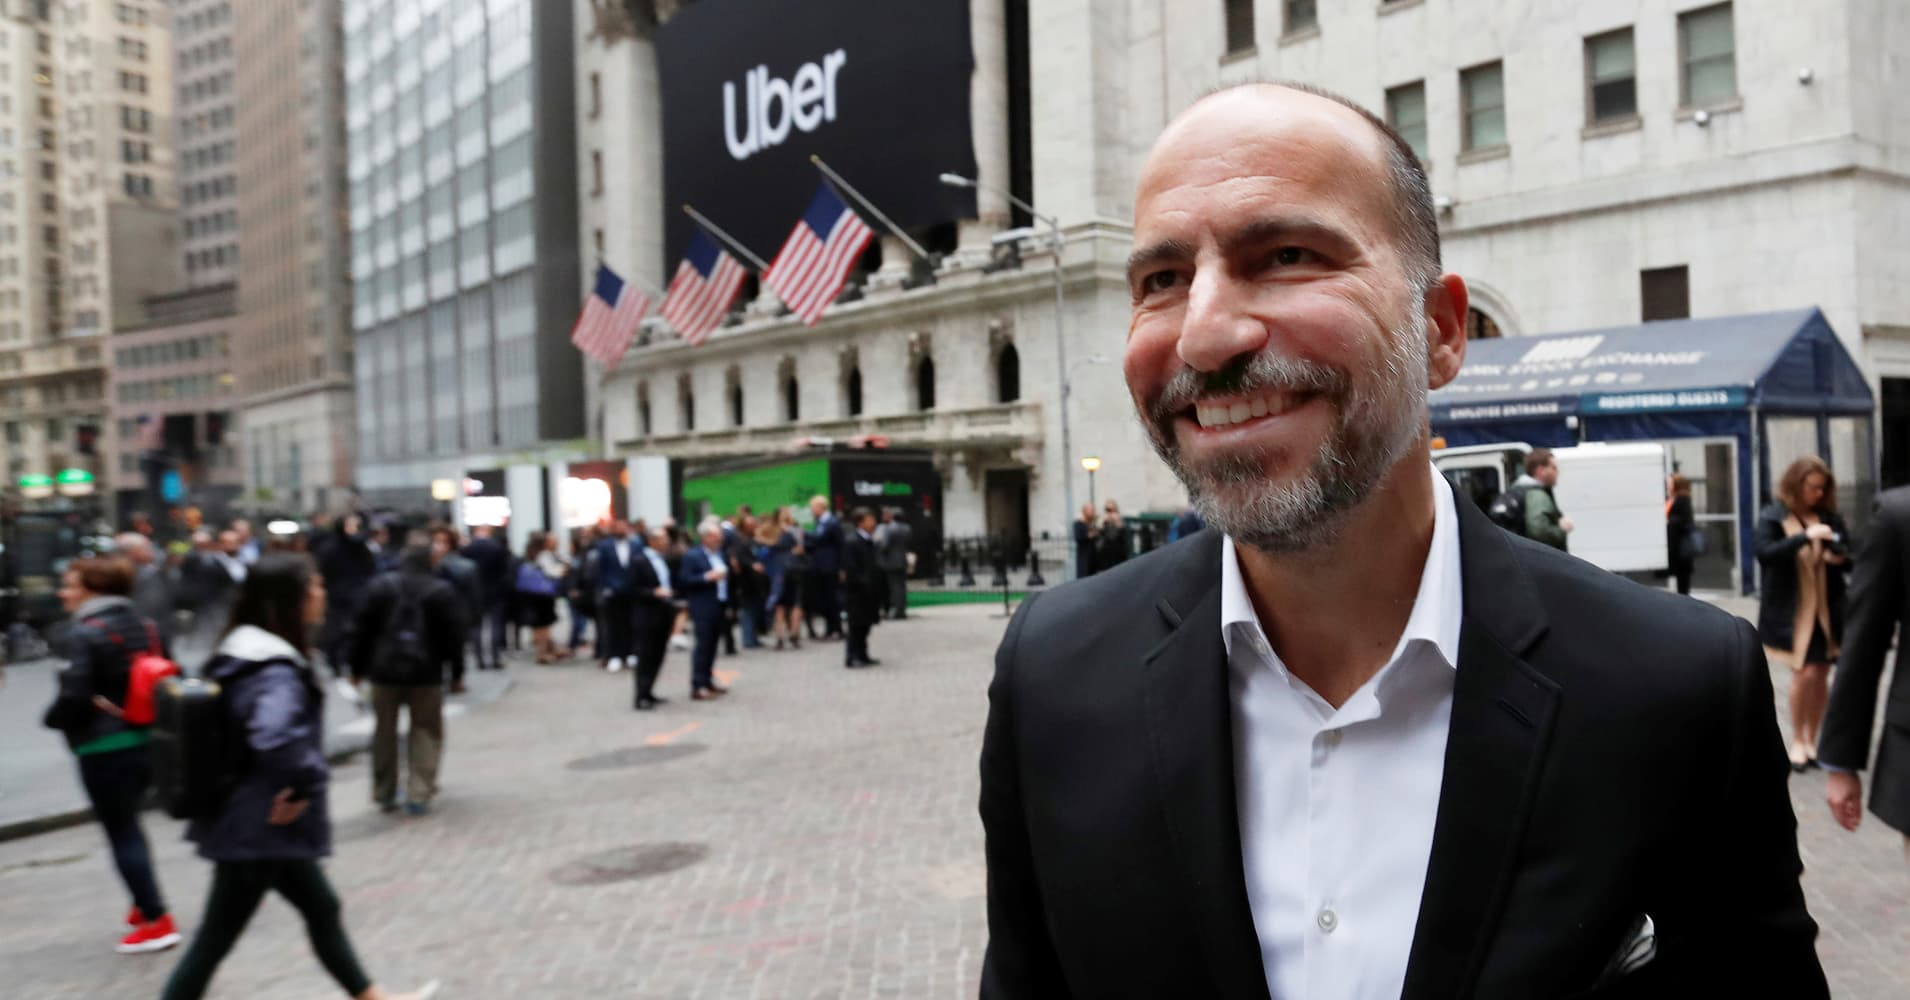 Uber CEO Says He's Building the Next Amazon, even though Growth is Slowing